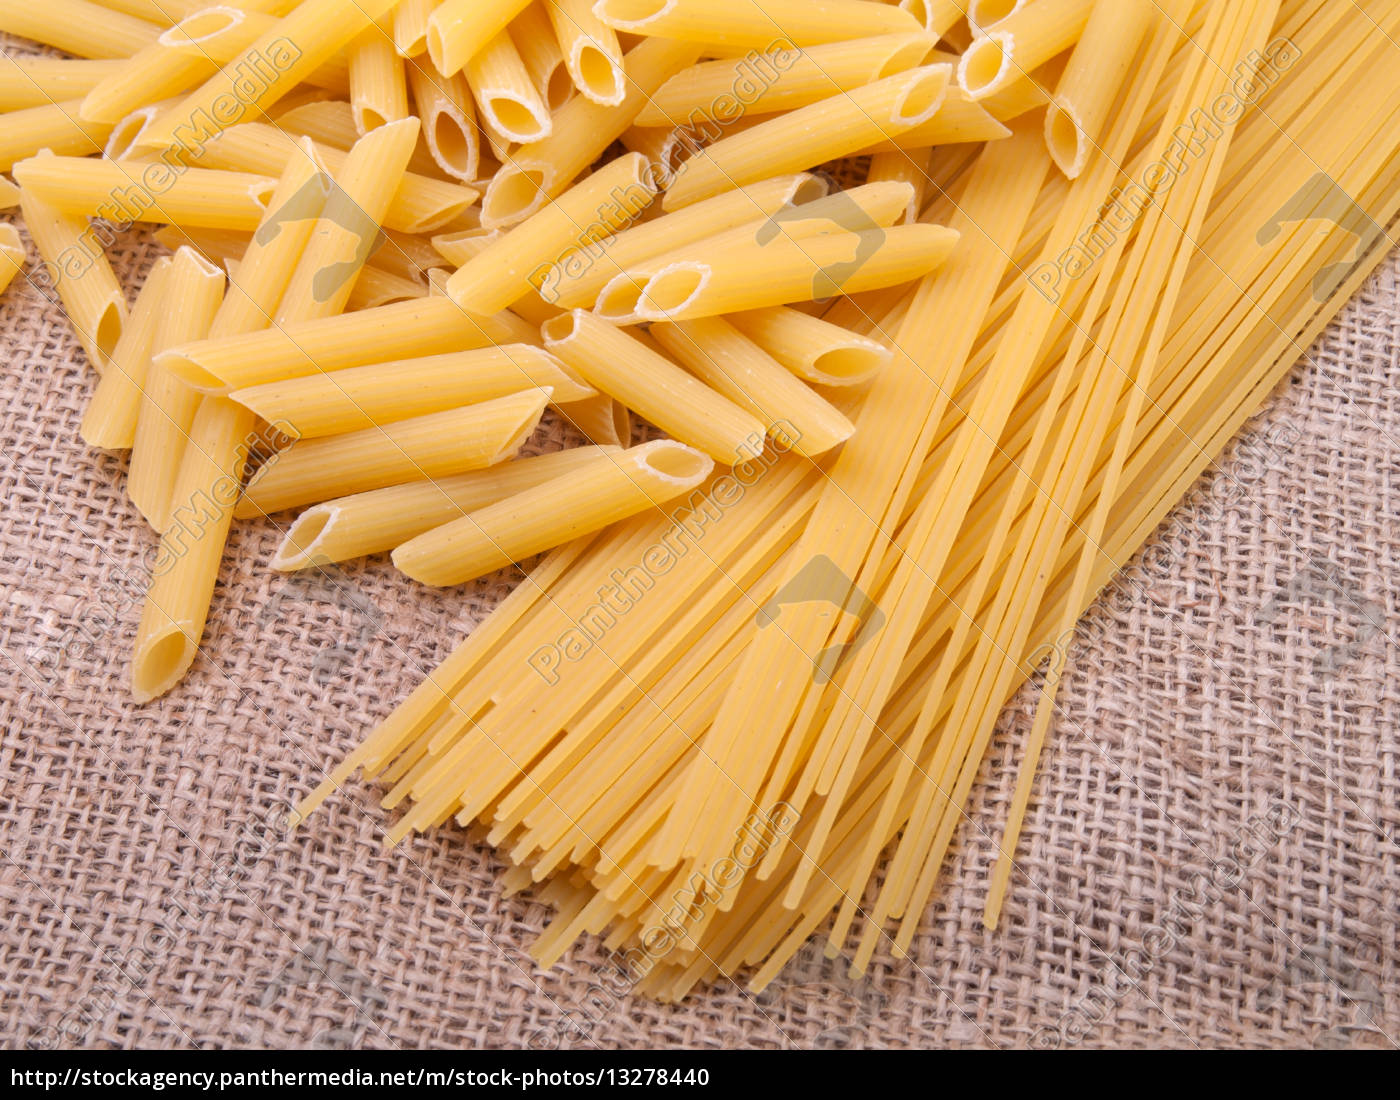 series, of, images, with, pasta., food - 13278440